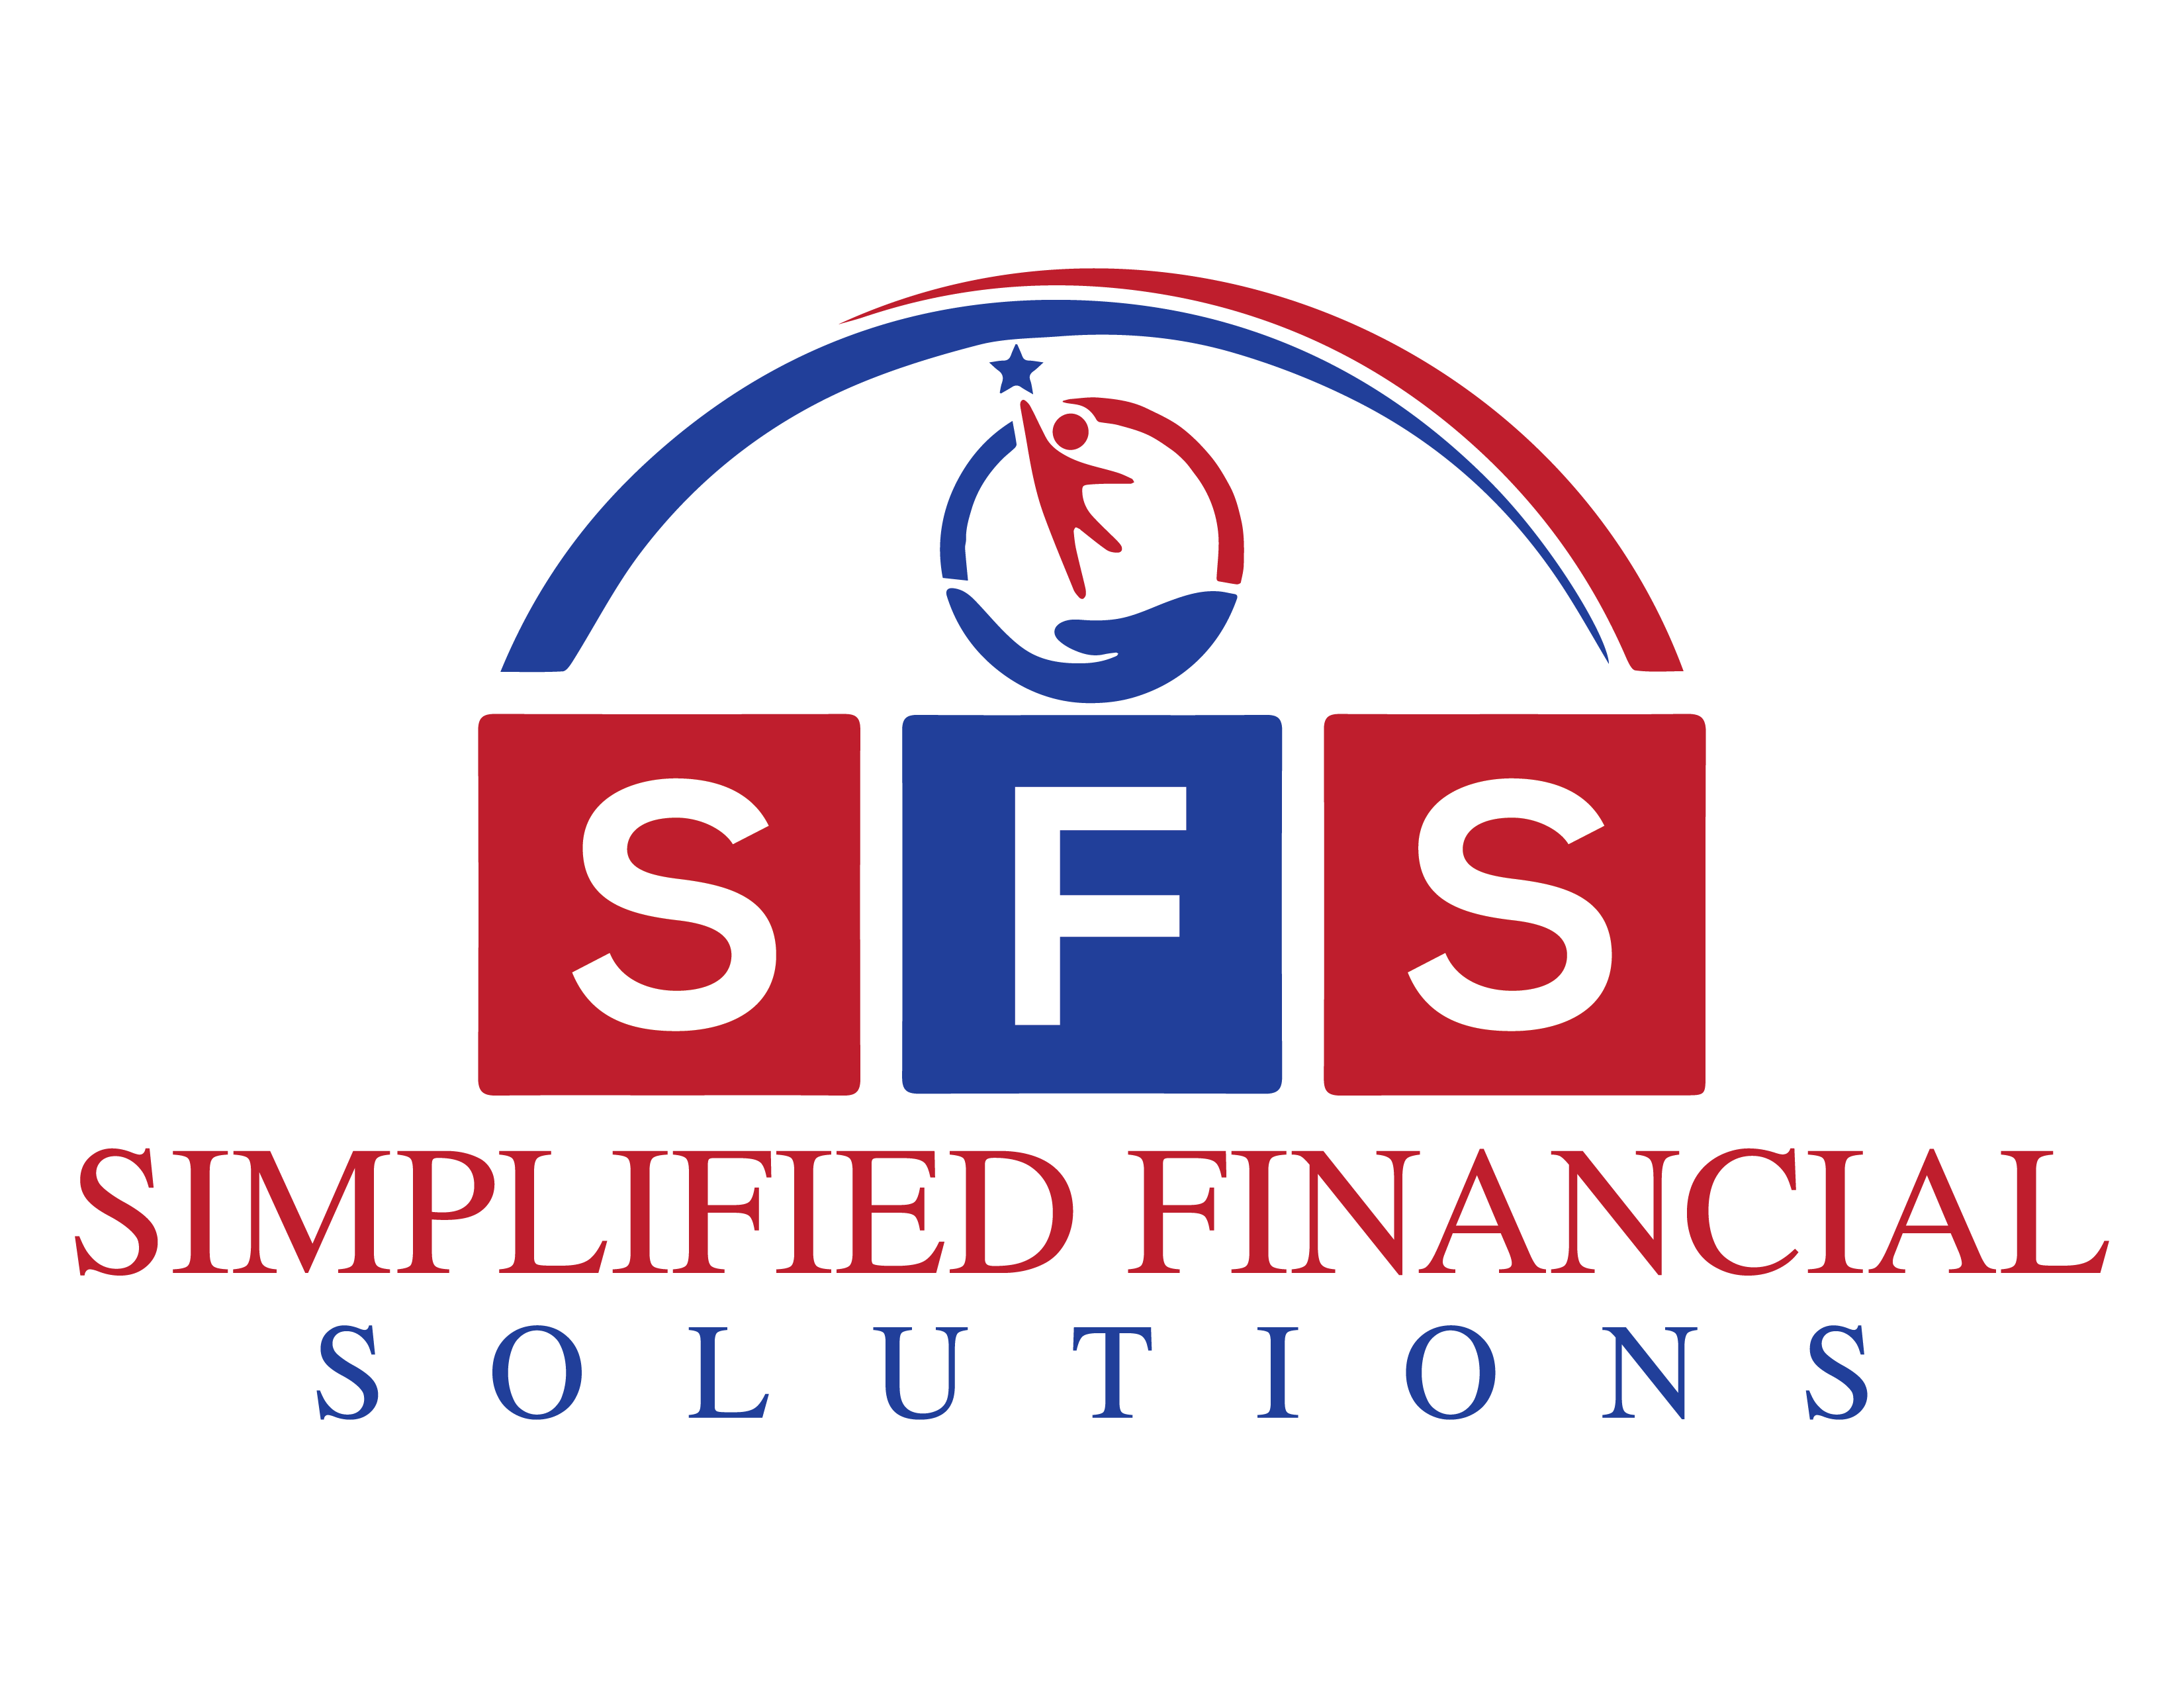 Simplified Financial Solutions